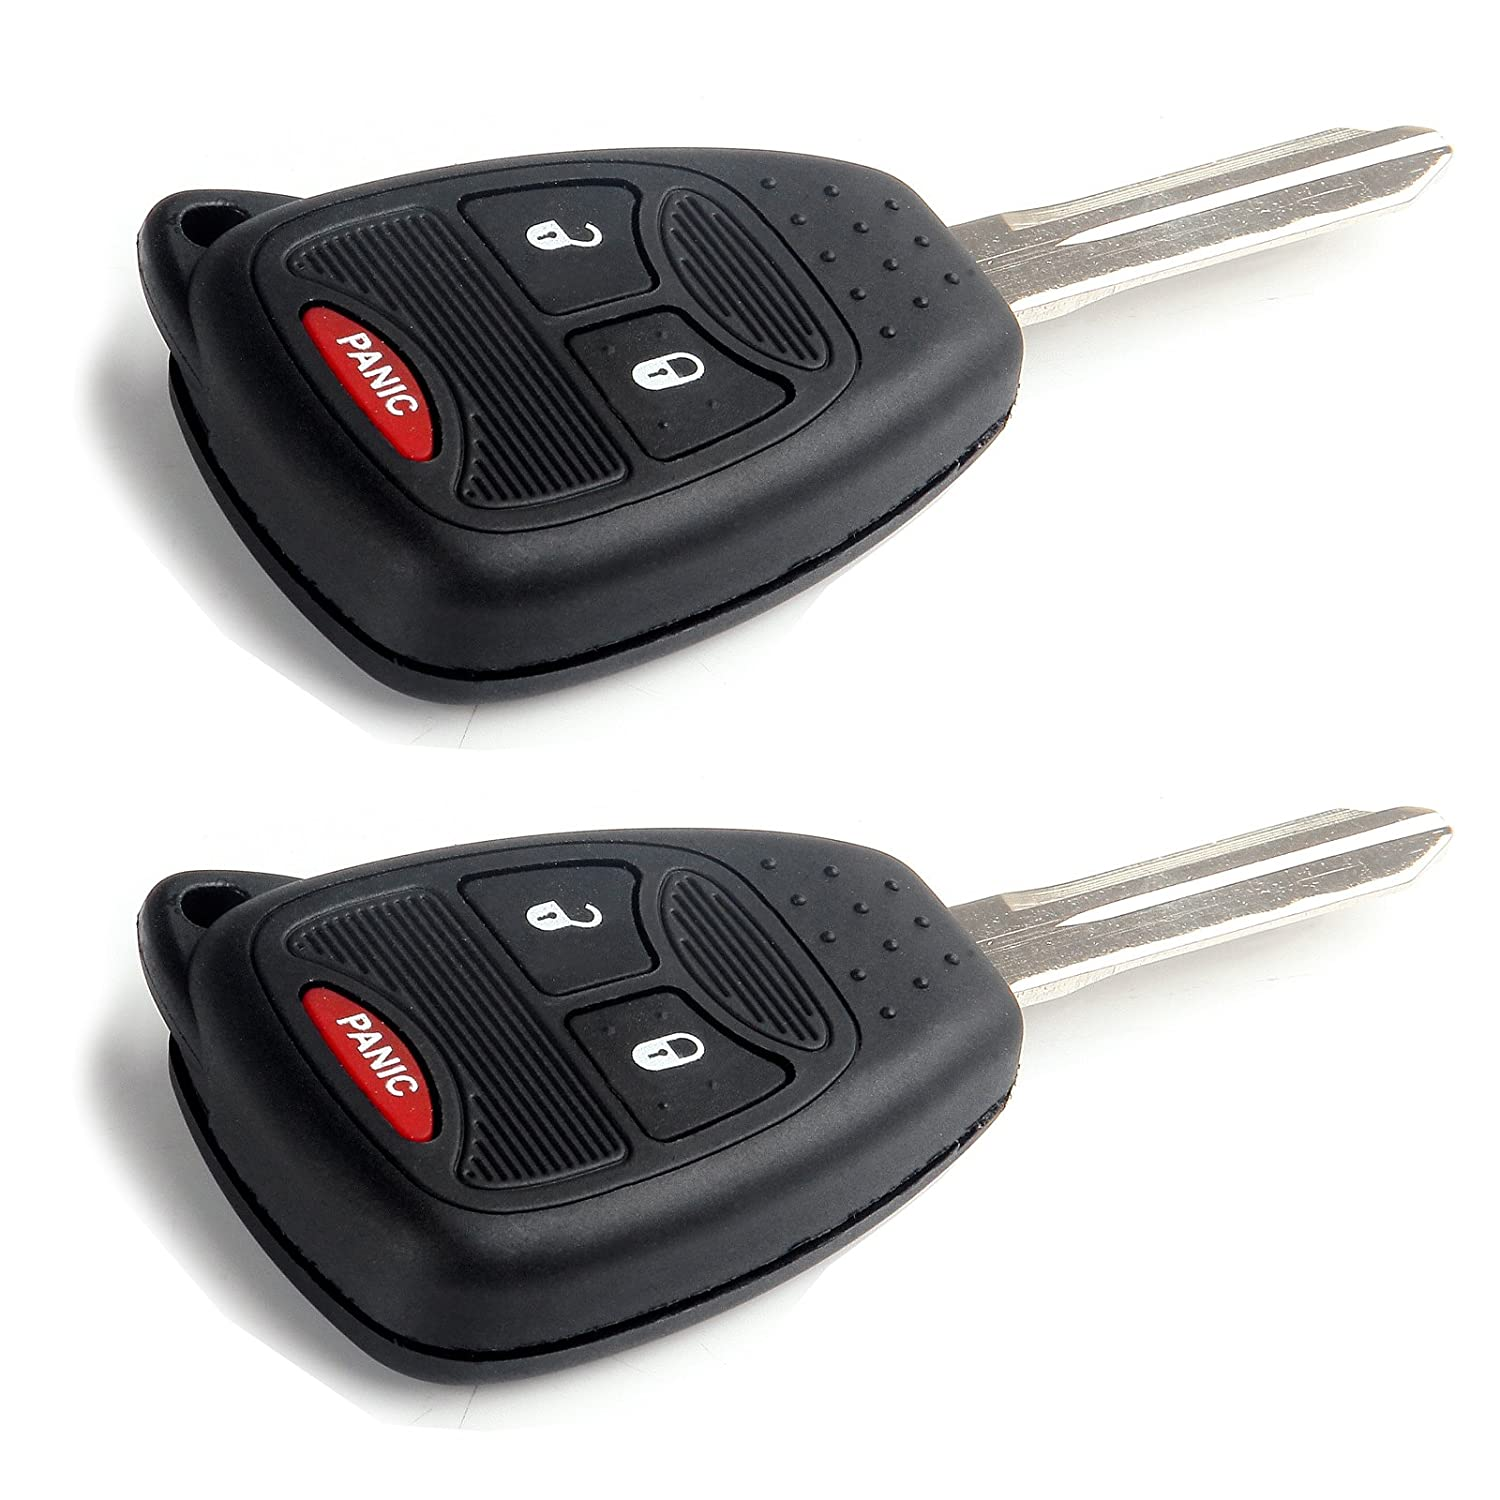 Keyless2Go Keyless Entry Remote Car Key Replacement for Vehicles That Use 4 Button OHT692713AA 2 Pack